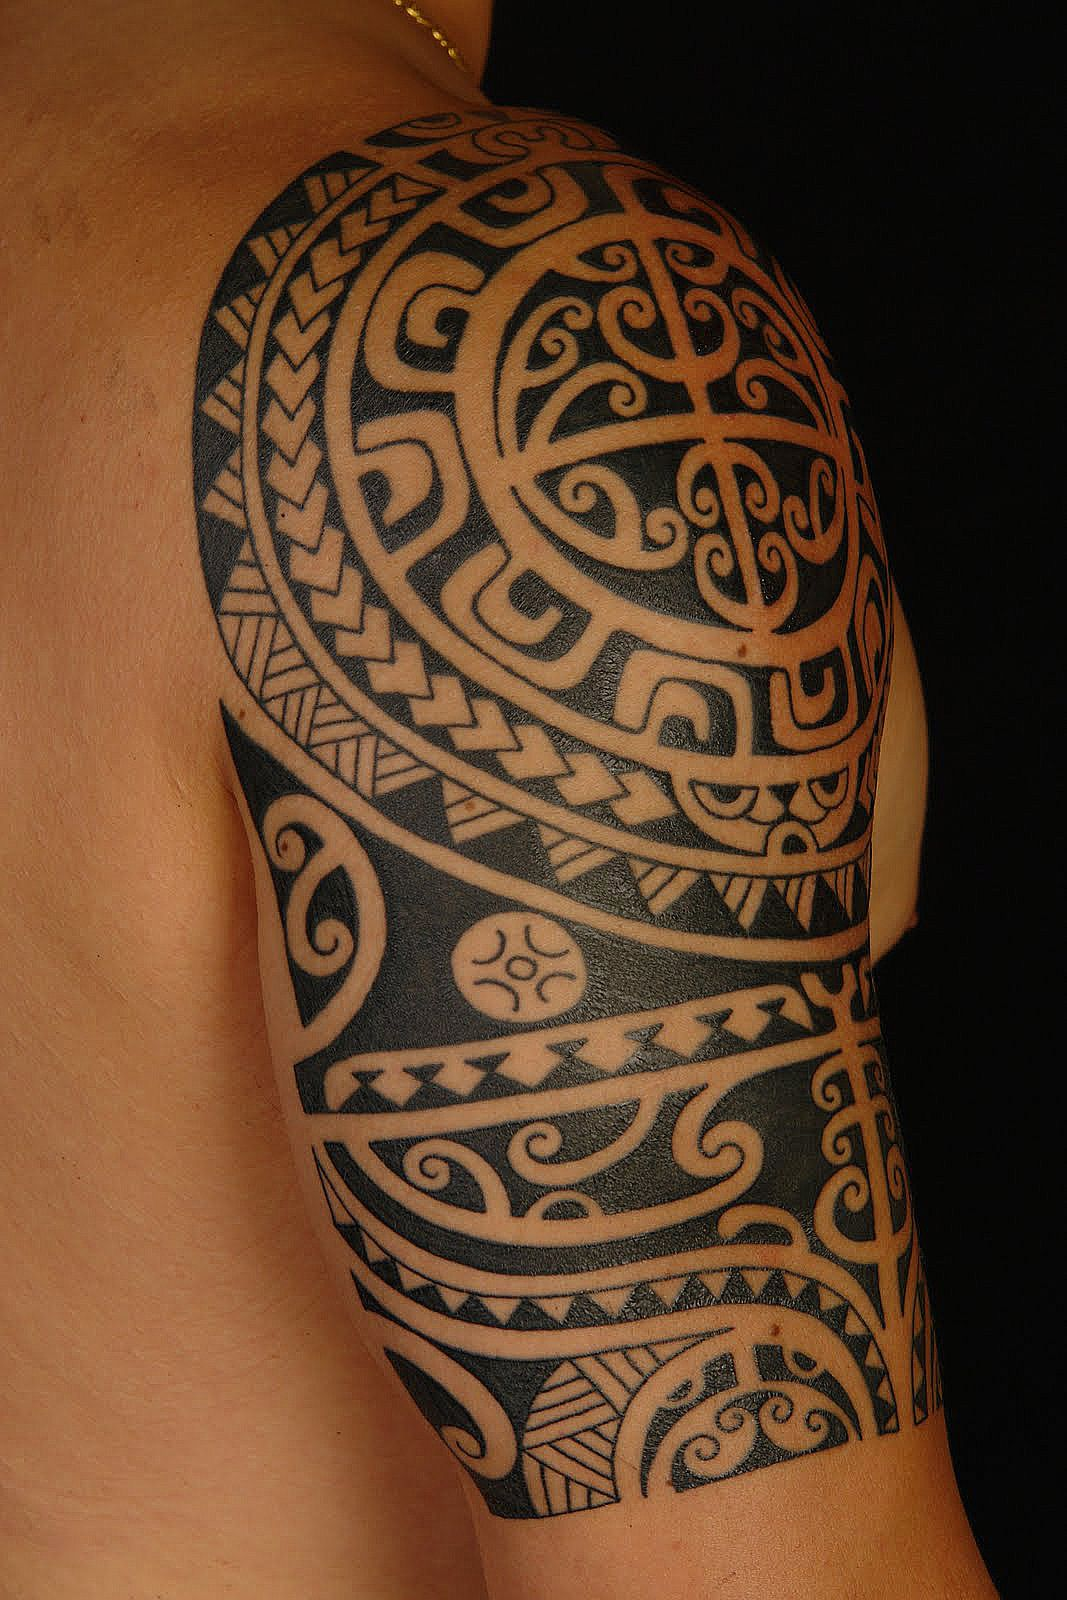 Polynesian tattoo on arm and chest - I So Love The Graphics The Artistry Of These Tattoos I Thought I Would